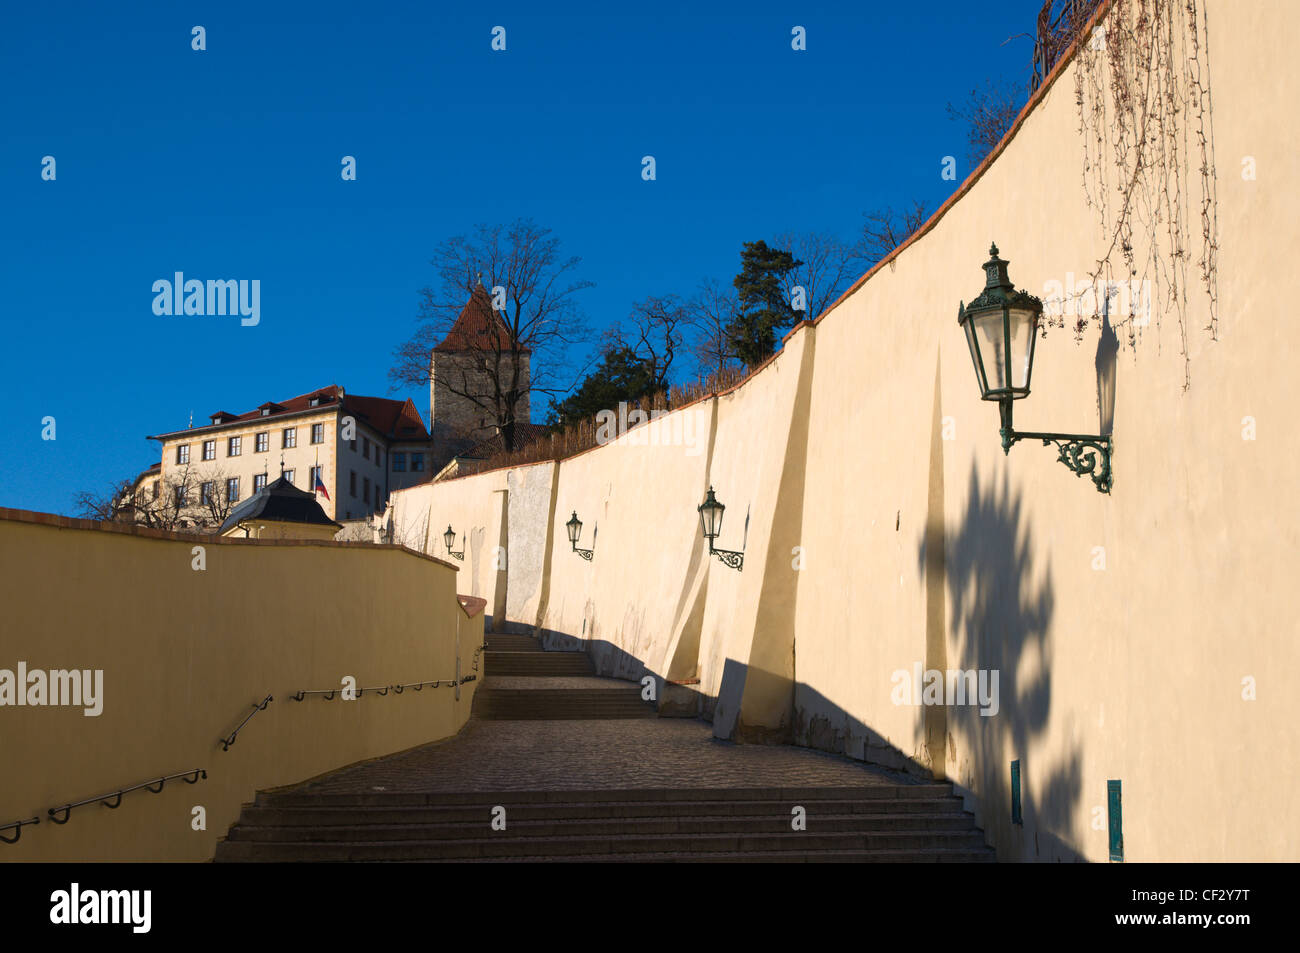 Stare zamecke schody stairs Hradcany the castle district Prague Czech Republic Europe - Stock Image